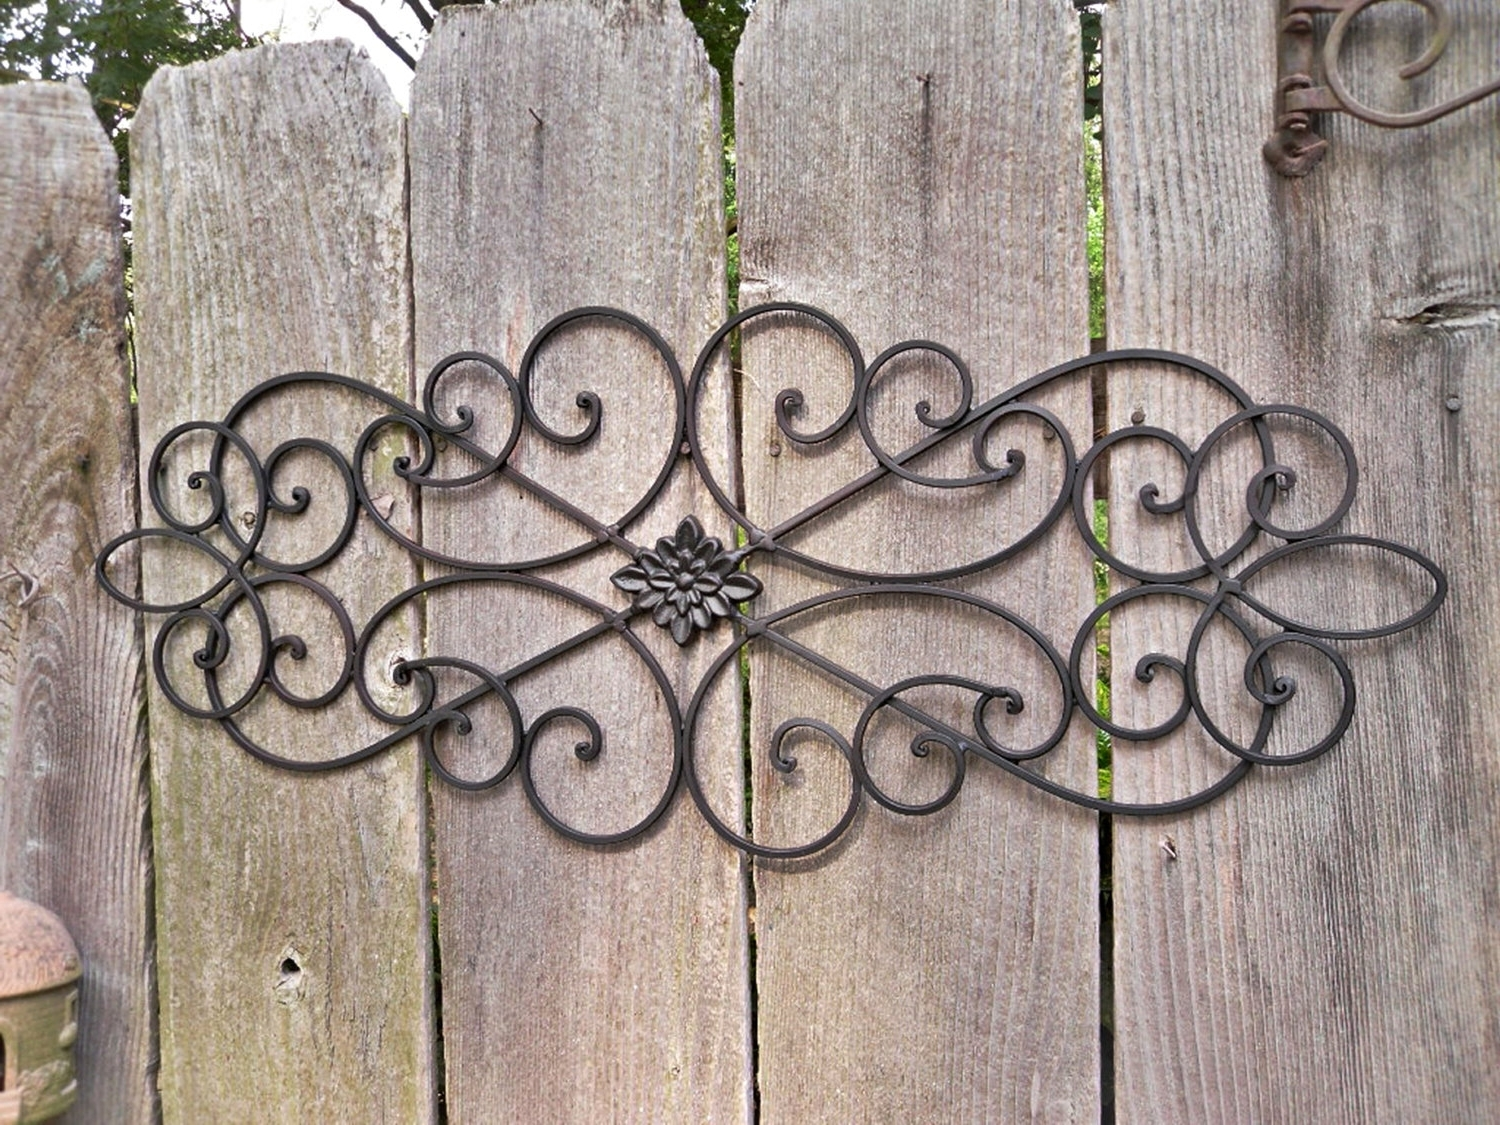 Most Recent Wrought Iron Wall Outdoor — Radionigerialagos With Regard To Iron Art For Walls (View 9 of 15)